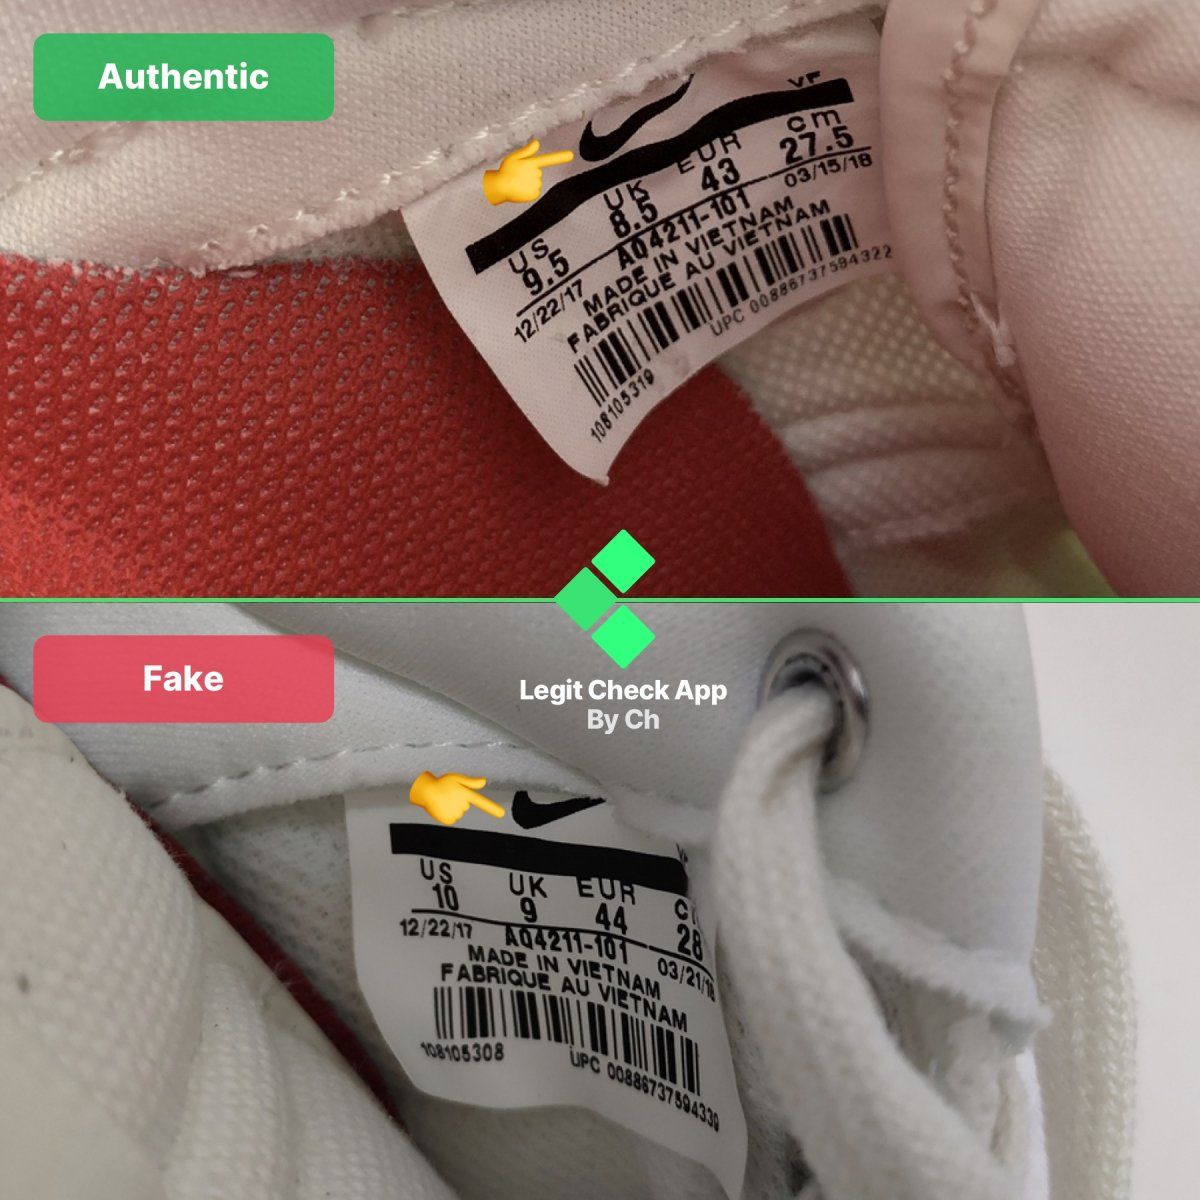 Kvragu Naslov Zapovjednistvo Nike Air Force 1 Size Tag Goldstandardsounds Com Sneaker comparison ng nike air force 1 (real vs fake) para mas maging aware tayo mga tol sa pagkakaiba ng legit and fake. nike air force 1 size tag